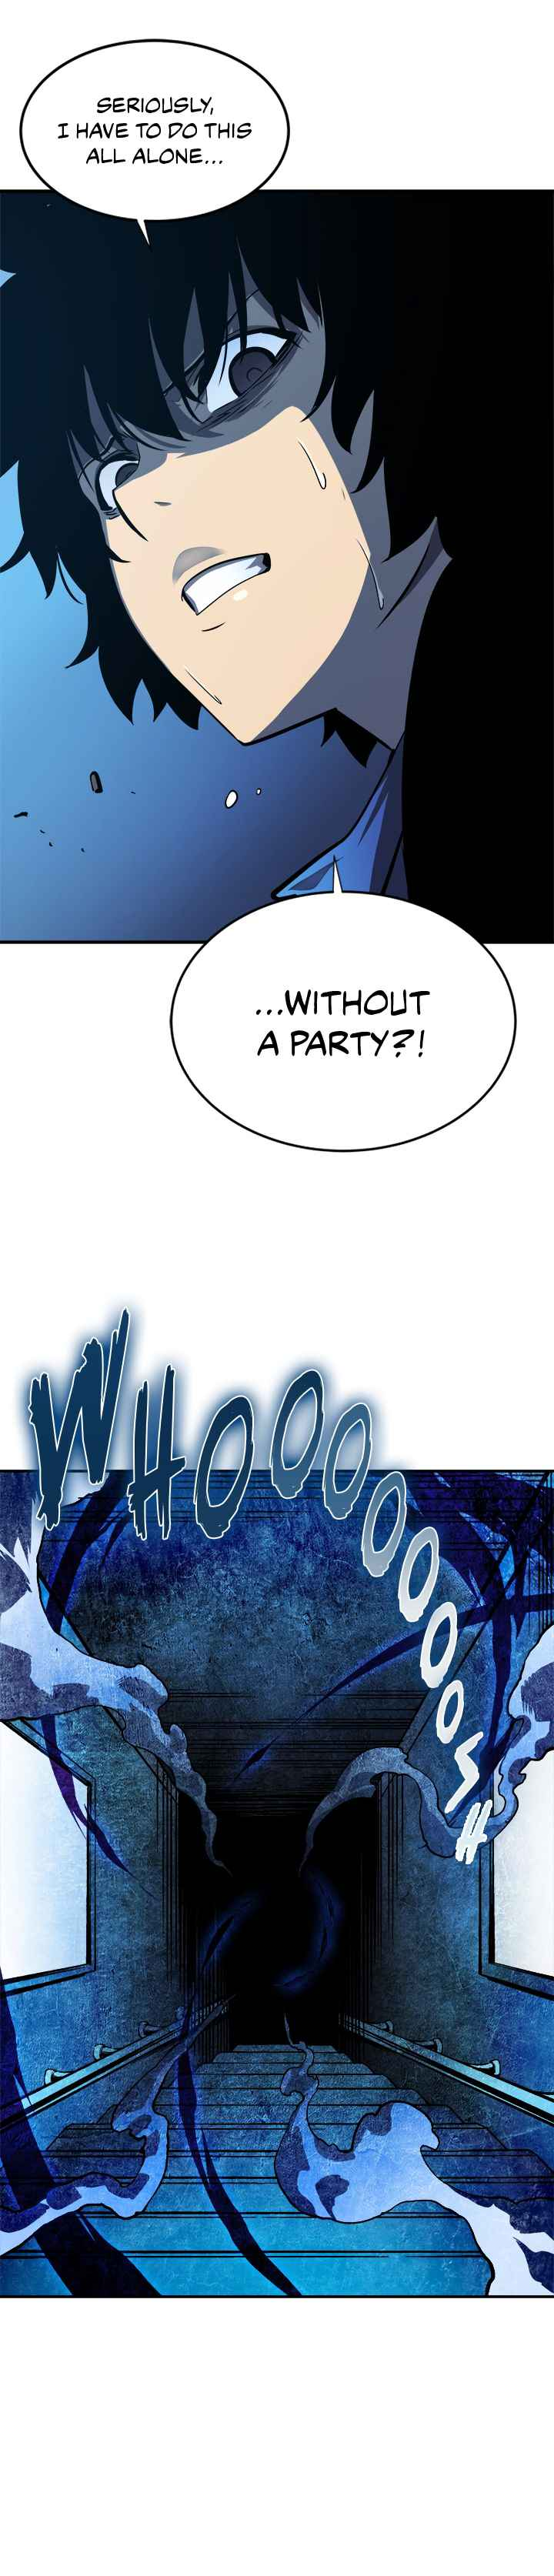 Solo Leveling Chapter 12 Page 26